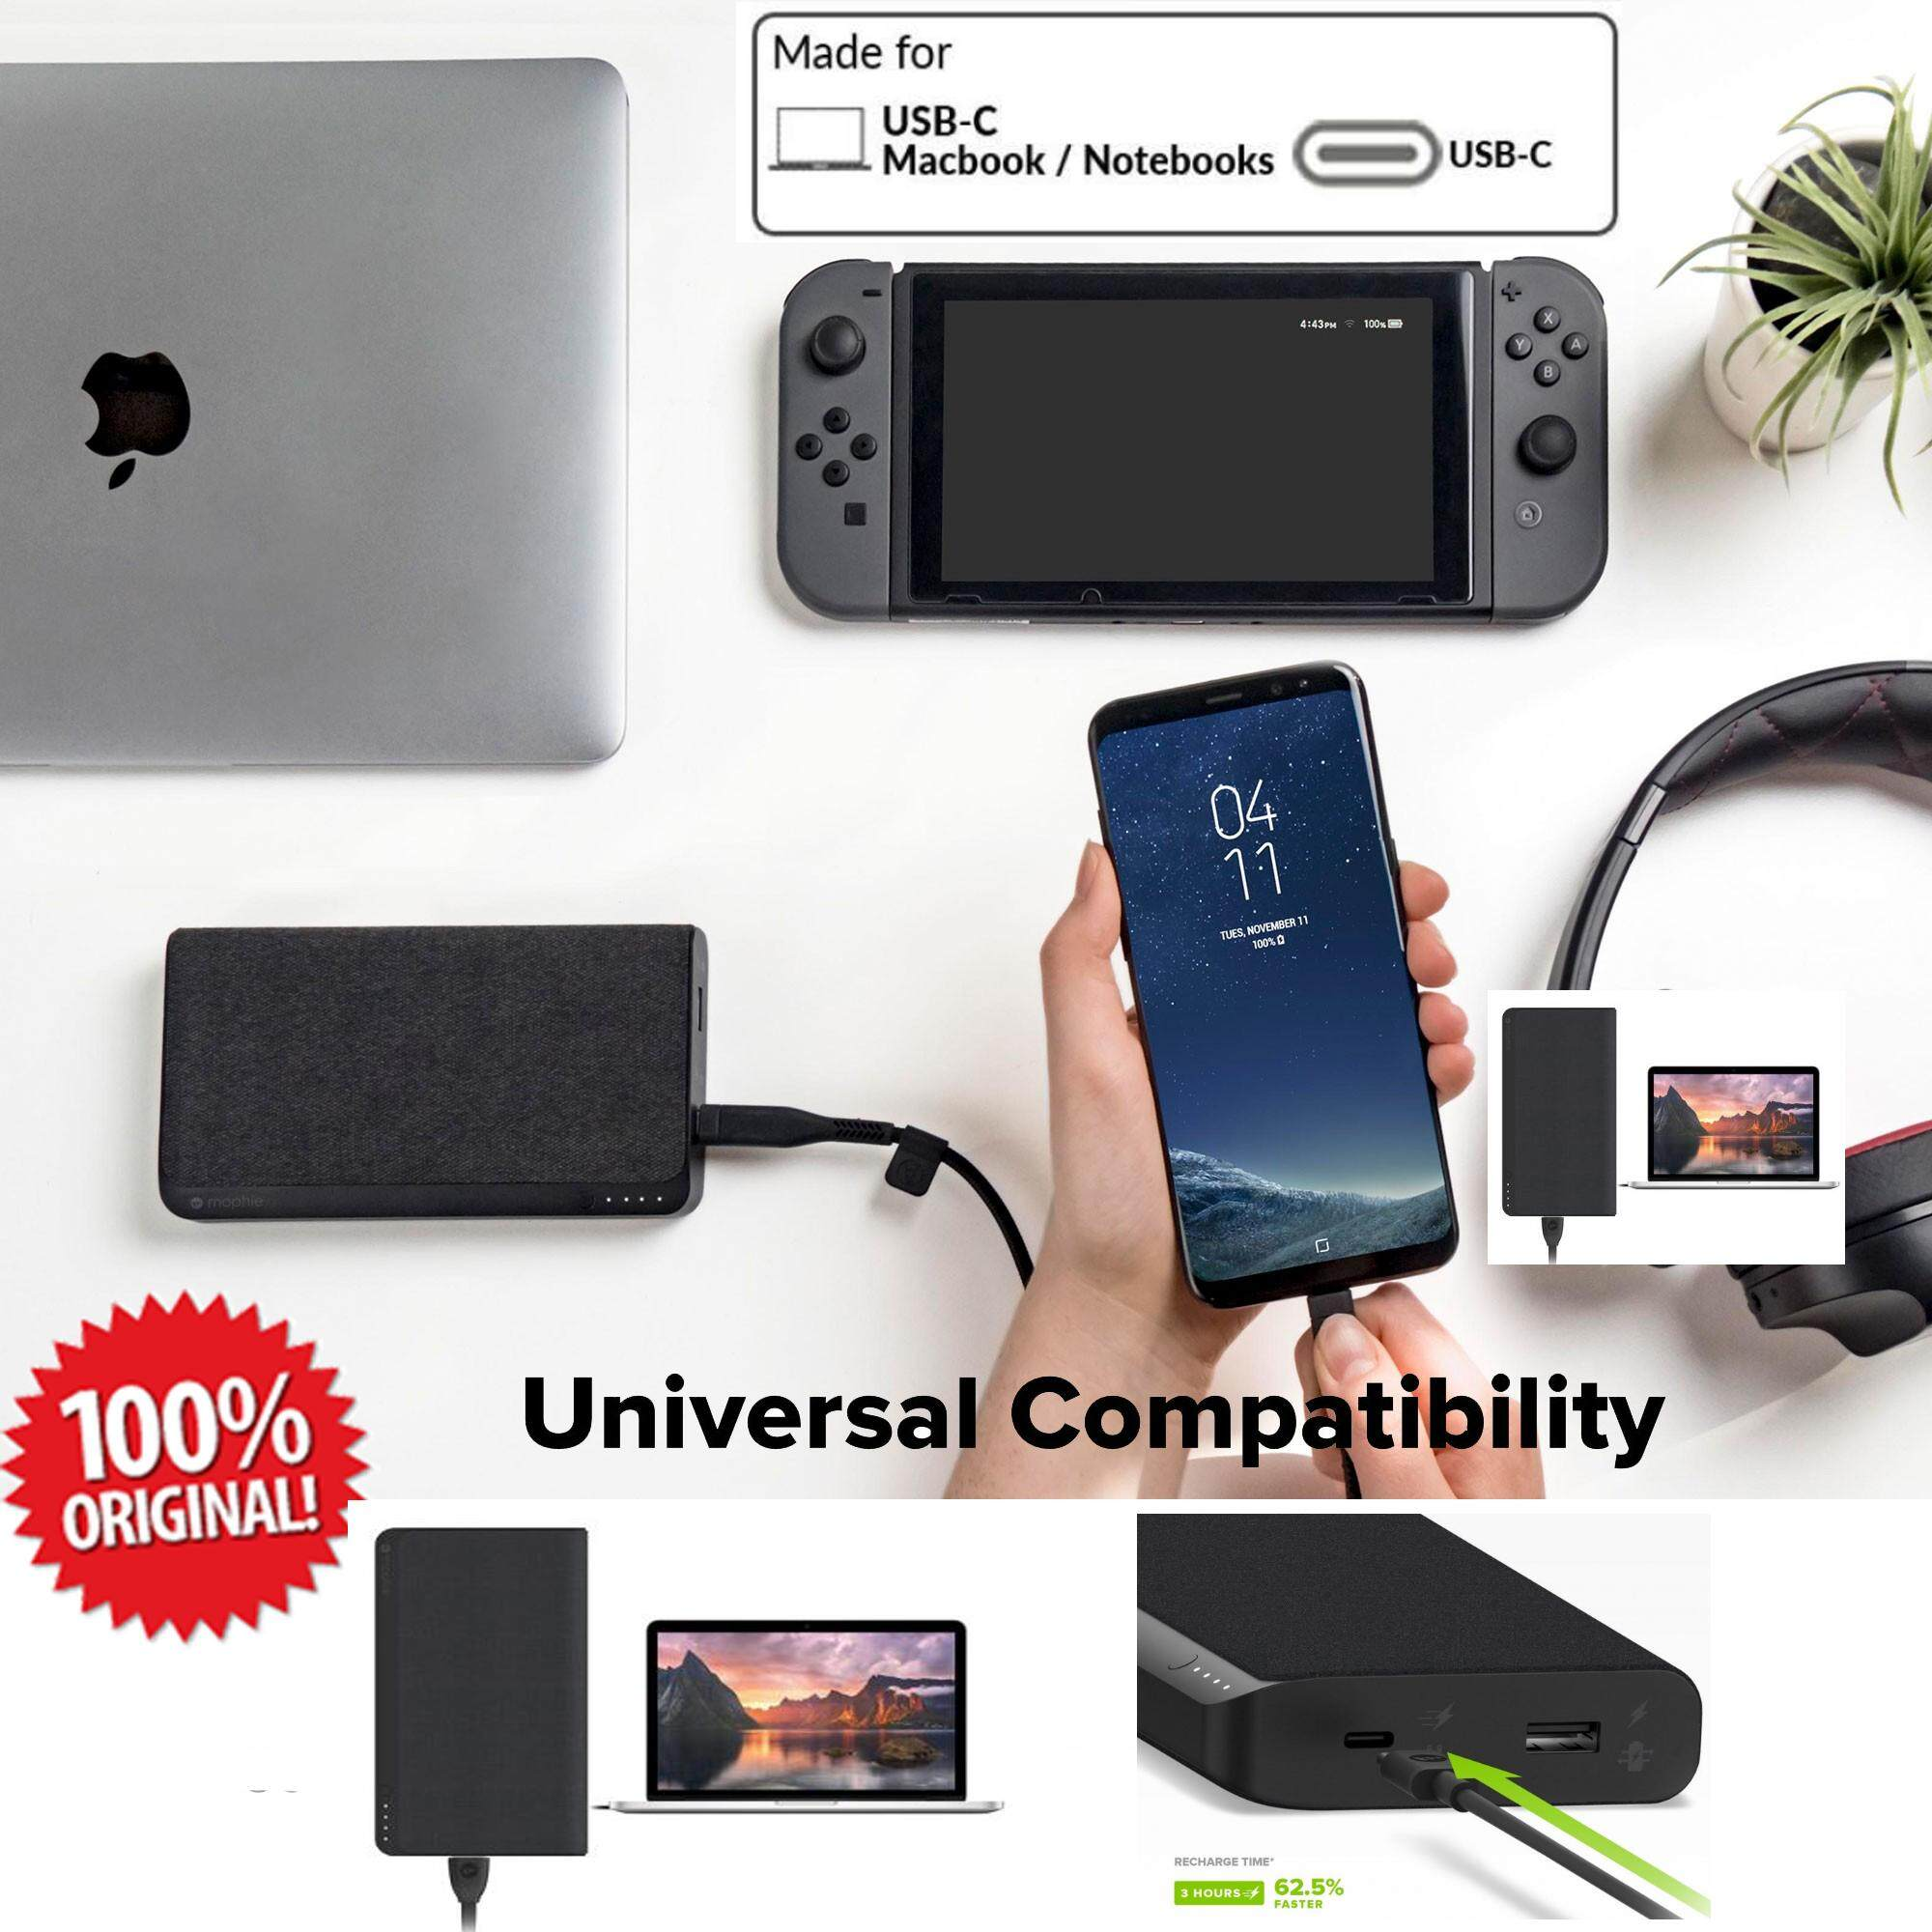 Mophie Powerstation USB-C XXL (19,500mAh)  Universal External Battery for Devices with USB-C or USB-A Connectors (19,500mAh) -  Made for Newest MacBooks and devices with USB-C or USB-A connectors